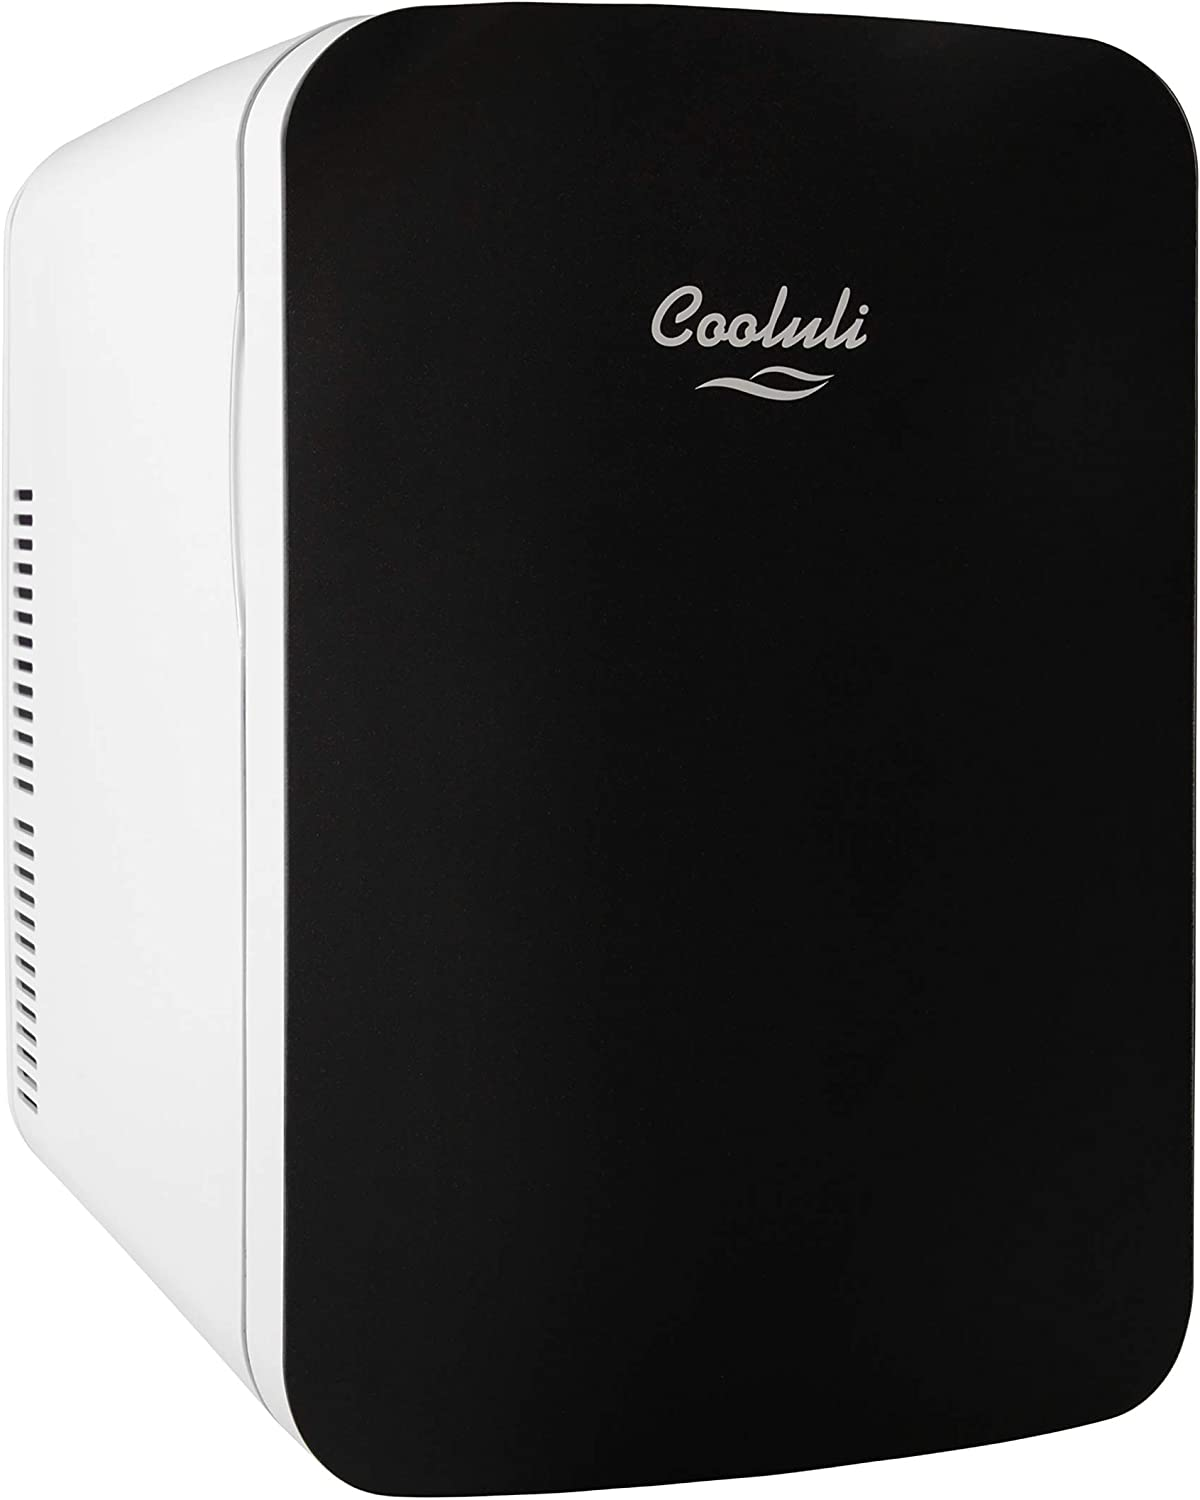 Cooluli Infinity Black 15 Liter Compact Portable Cooler Warmer Mini Fridge for Bedroom, Office, Dorm, Car - Great for Skincare & Cosmetics (110-240V/12V)